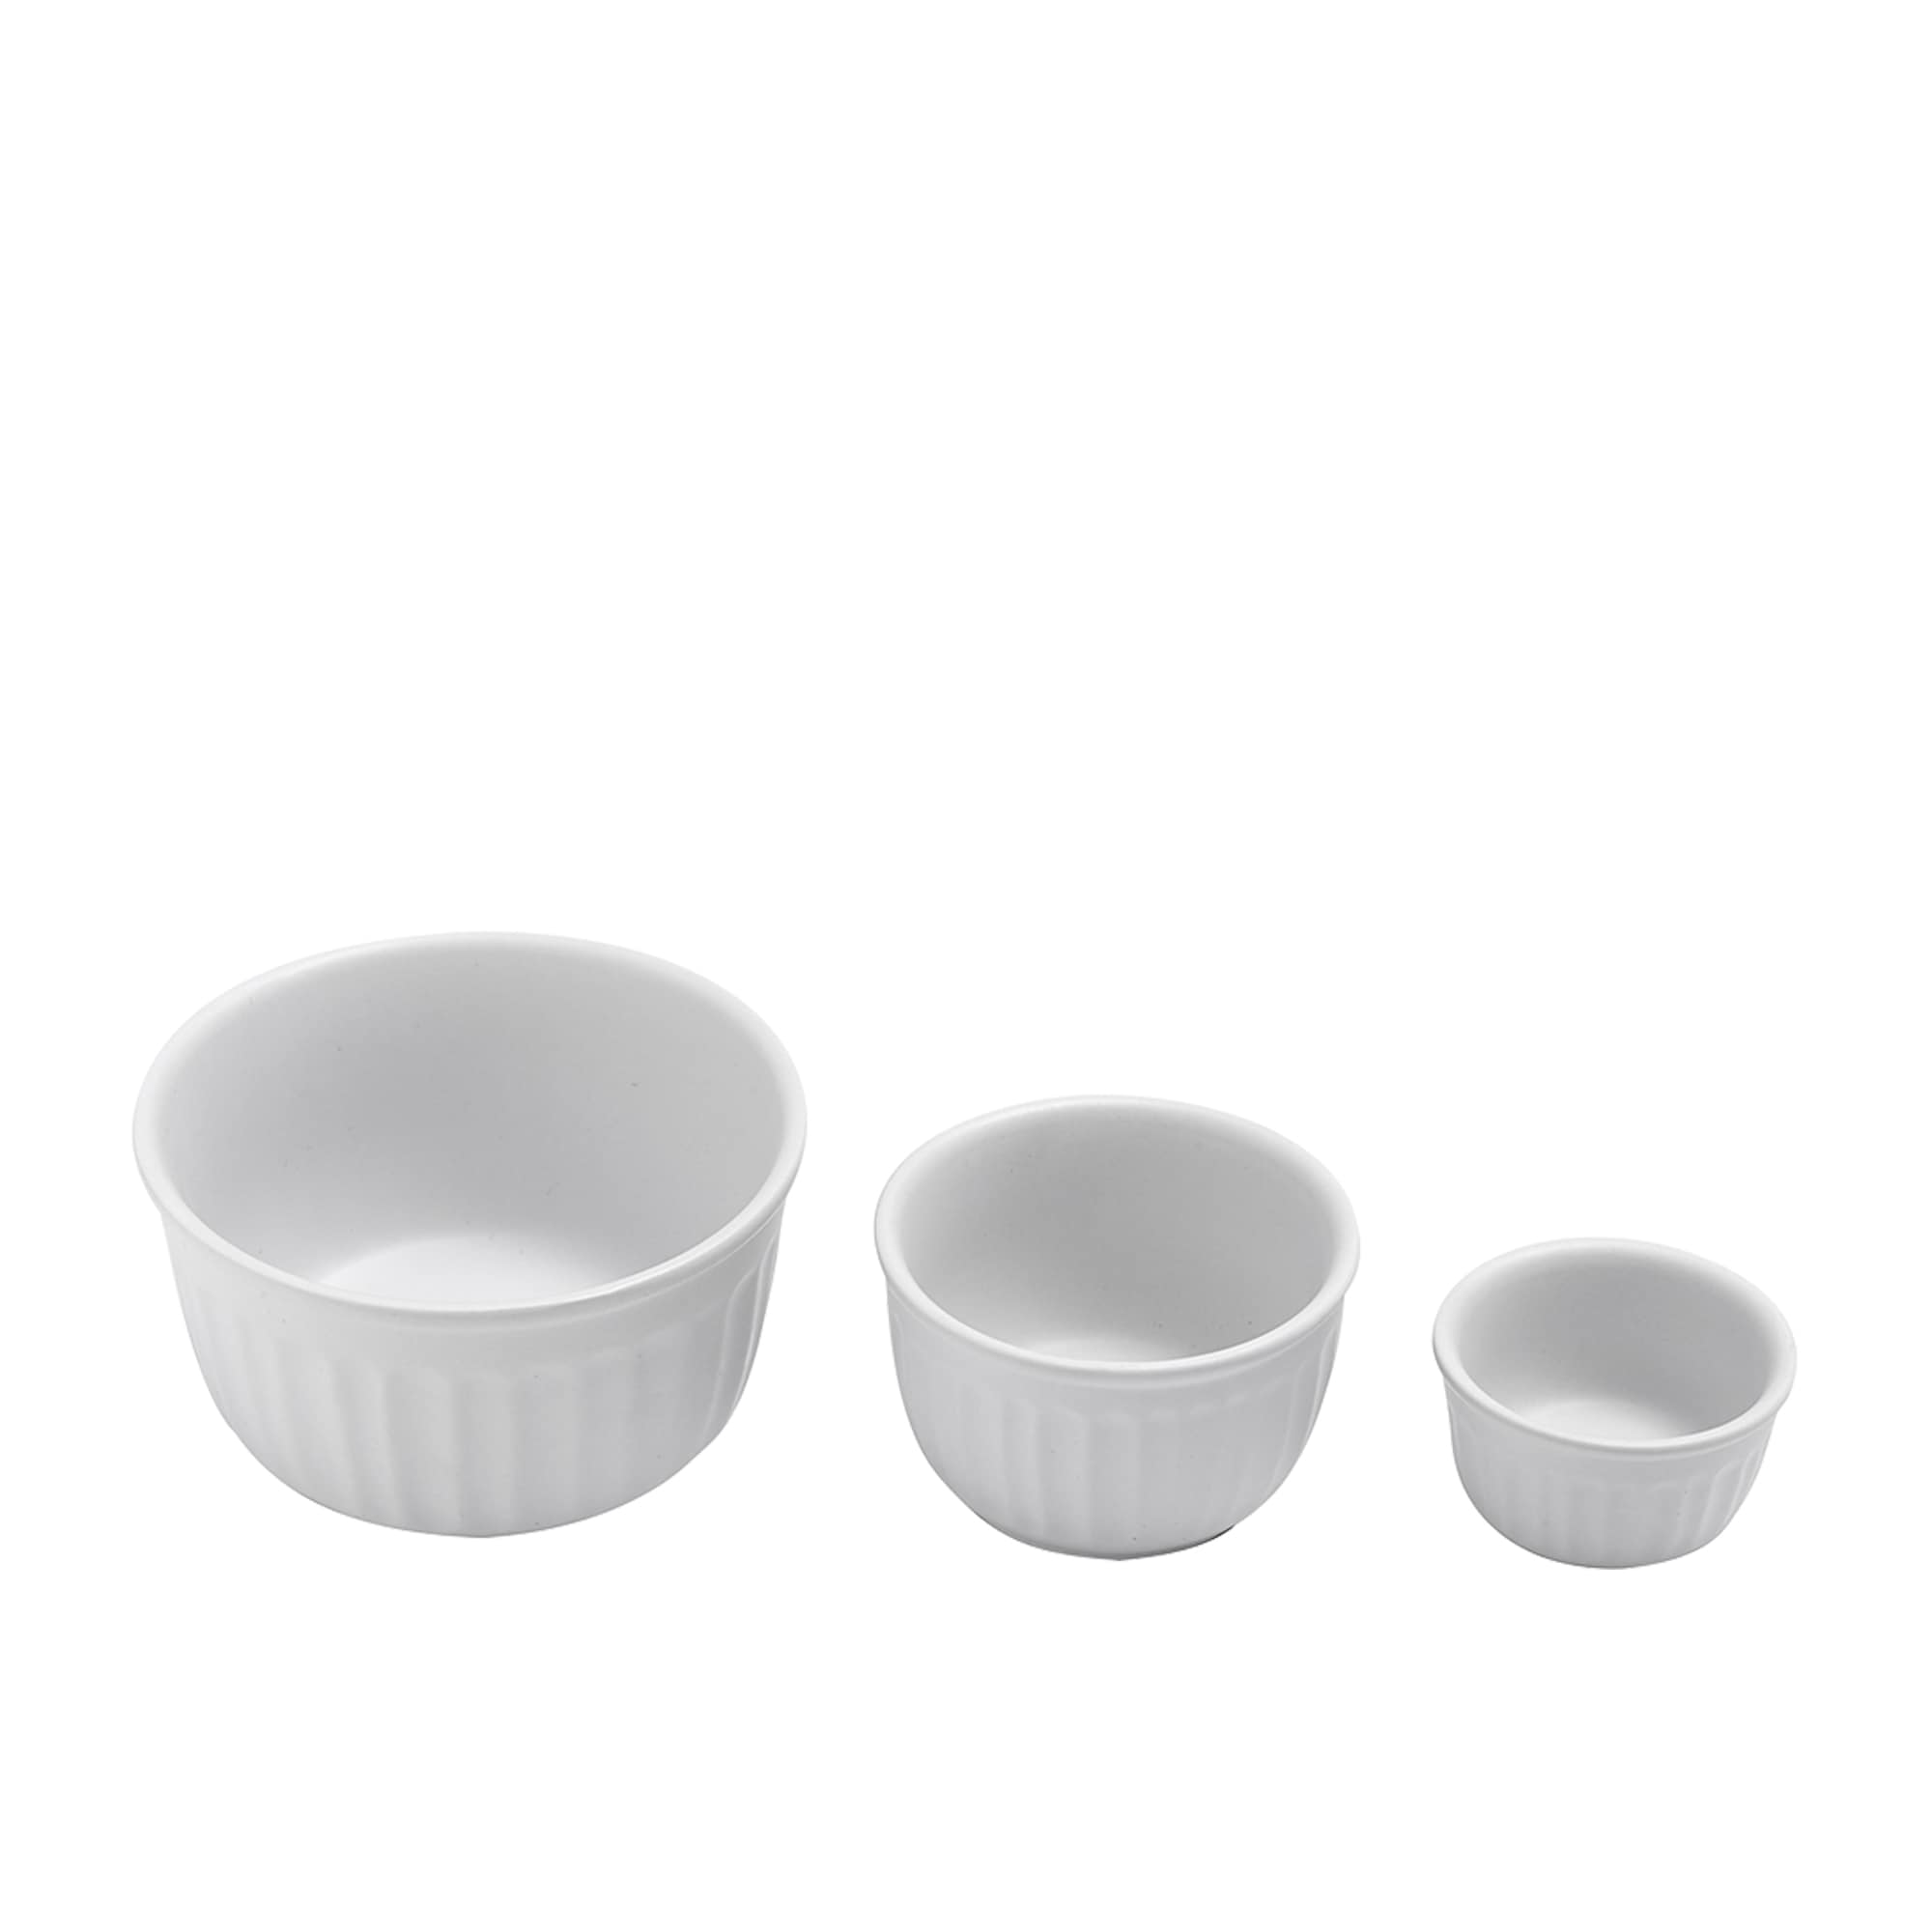 Ladelle Abode 3pc Ramekin Set White